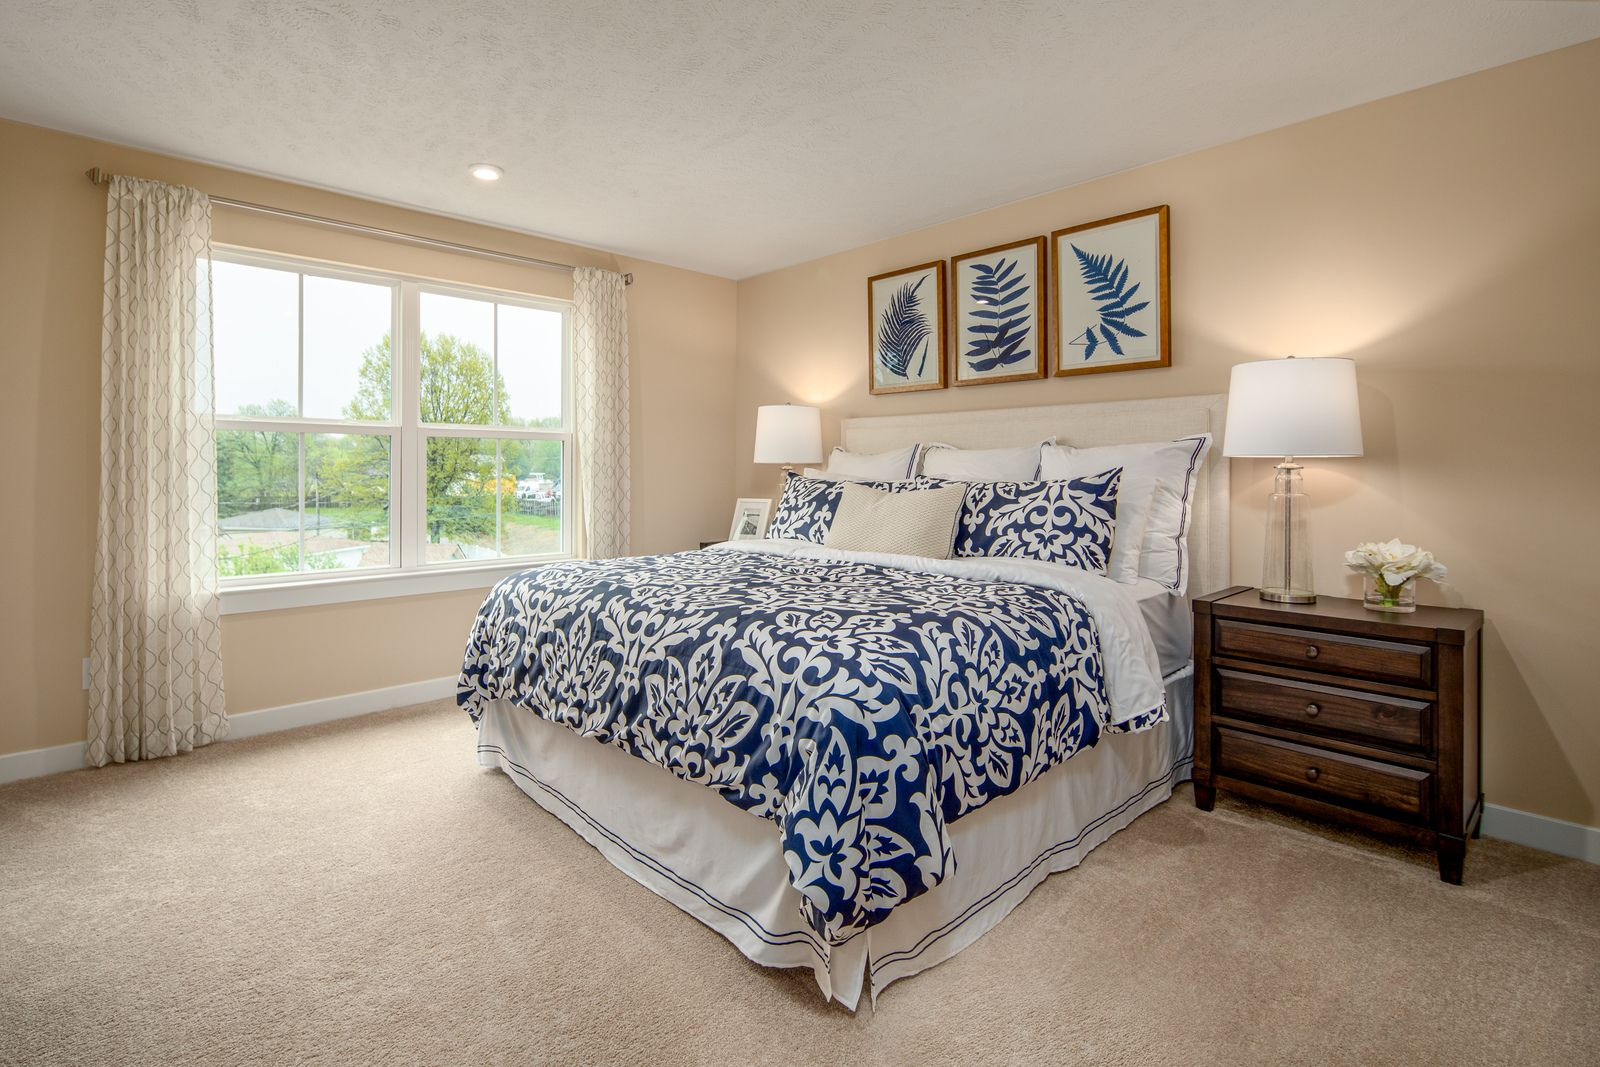 Bedroom featured in the Allegheny By Ryan Homes in Charleston, SC